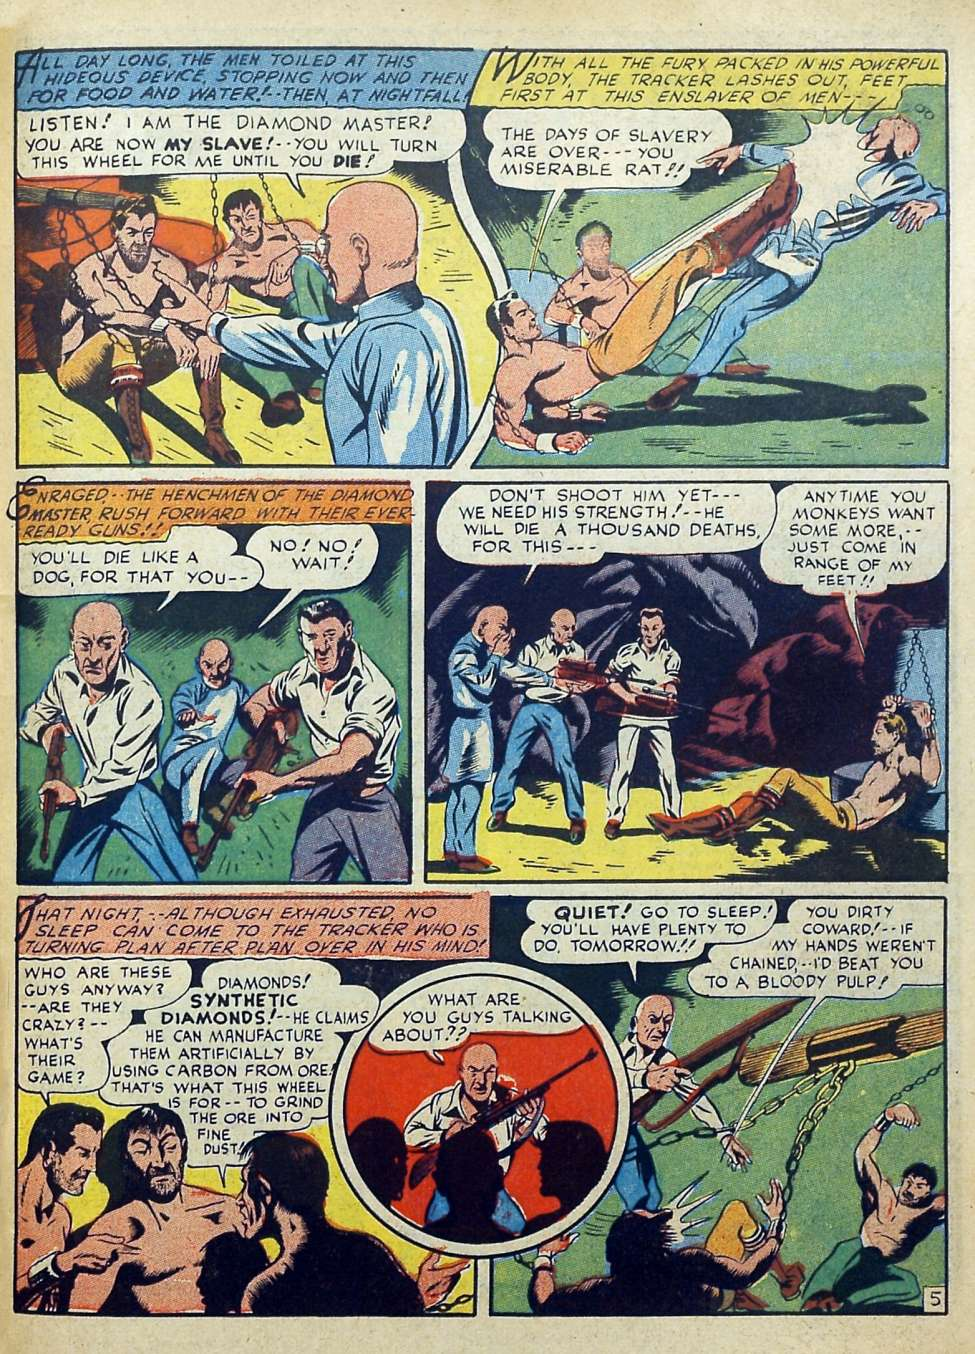 Suspense Comics #3 from 1944 49